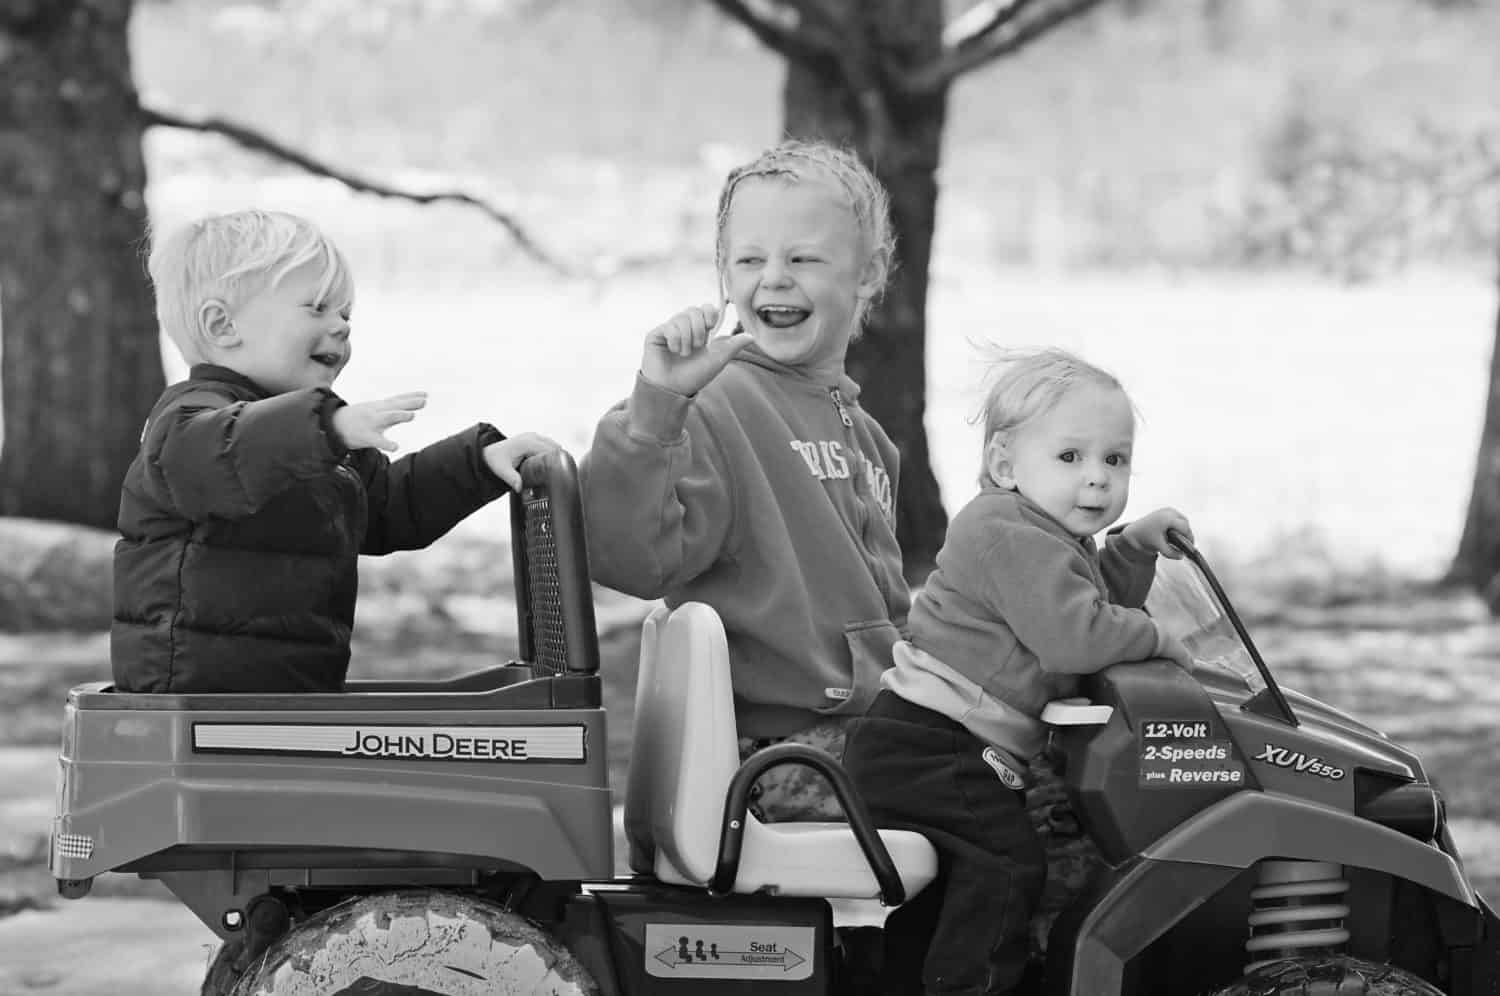 Three siblings in a wagon laughing together